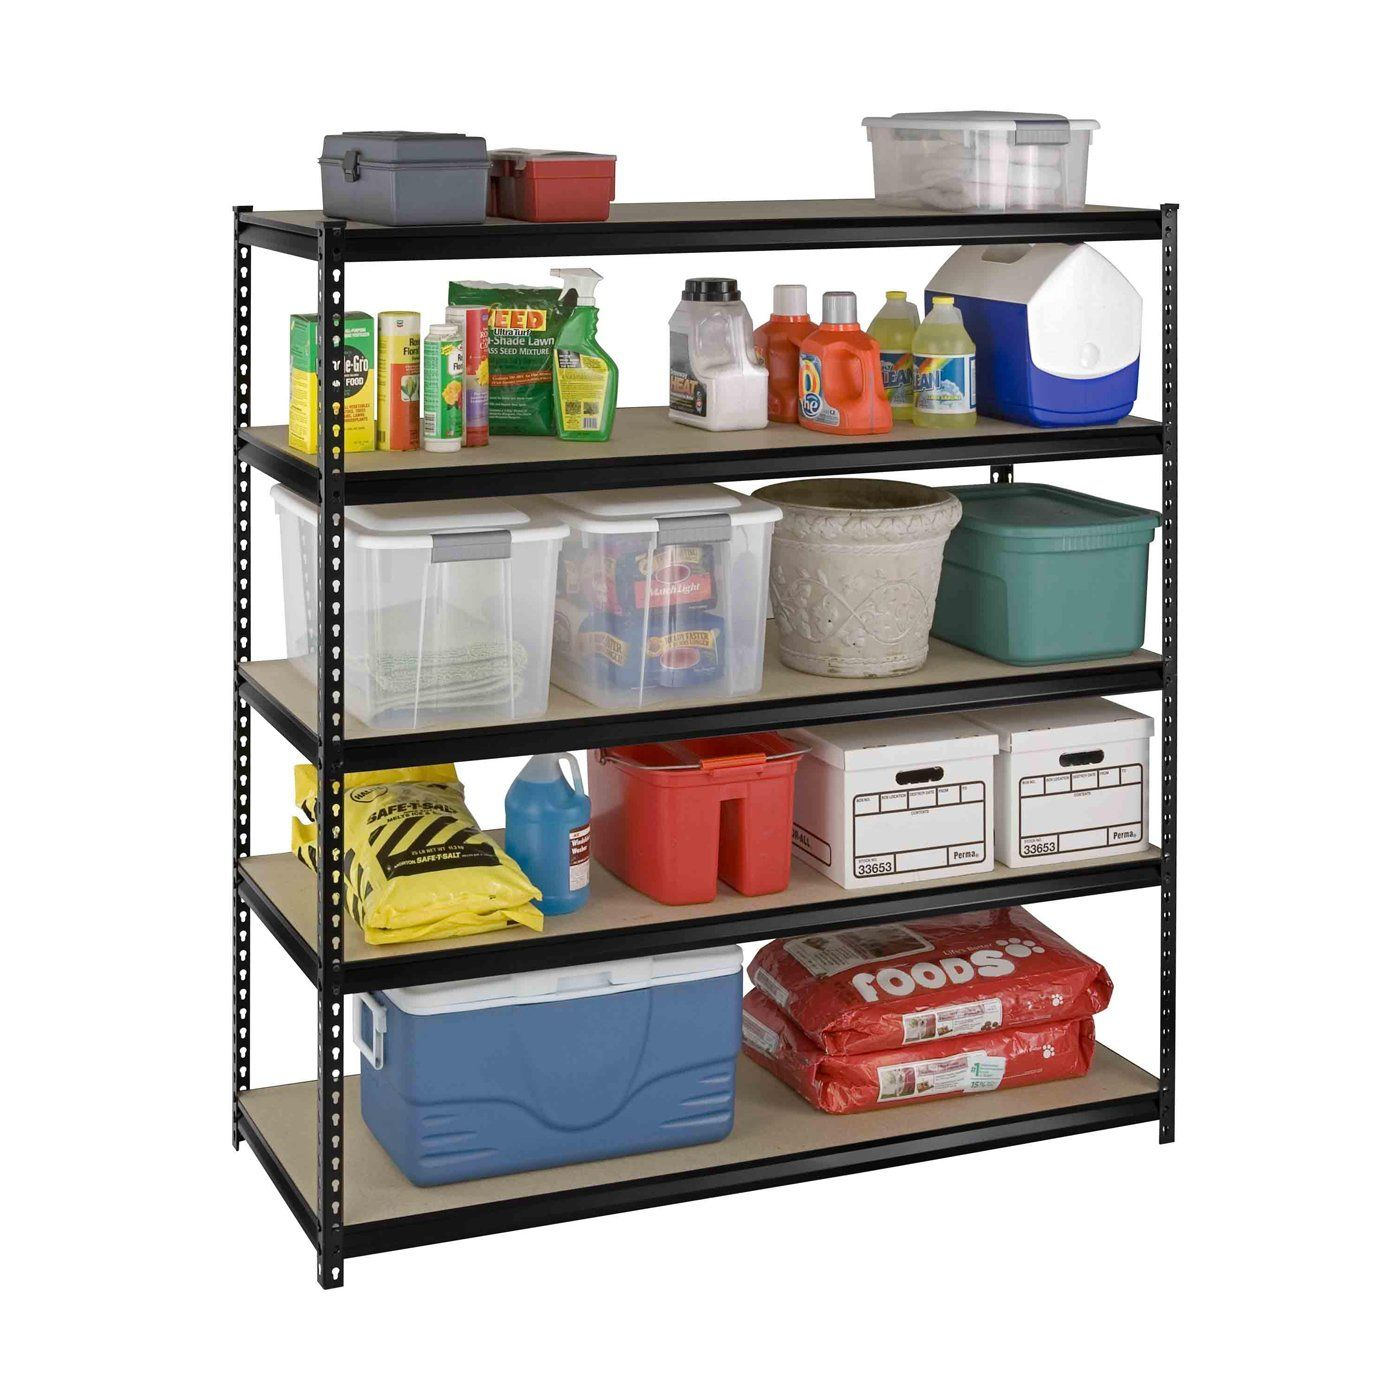 Modern Design Garage With Boltless Rivet Shelving Unit, And 5